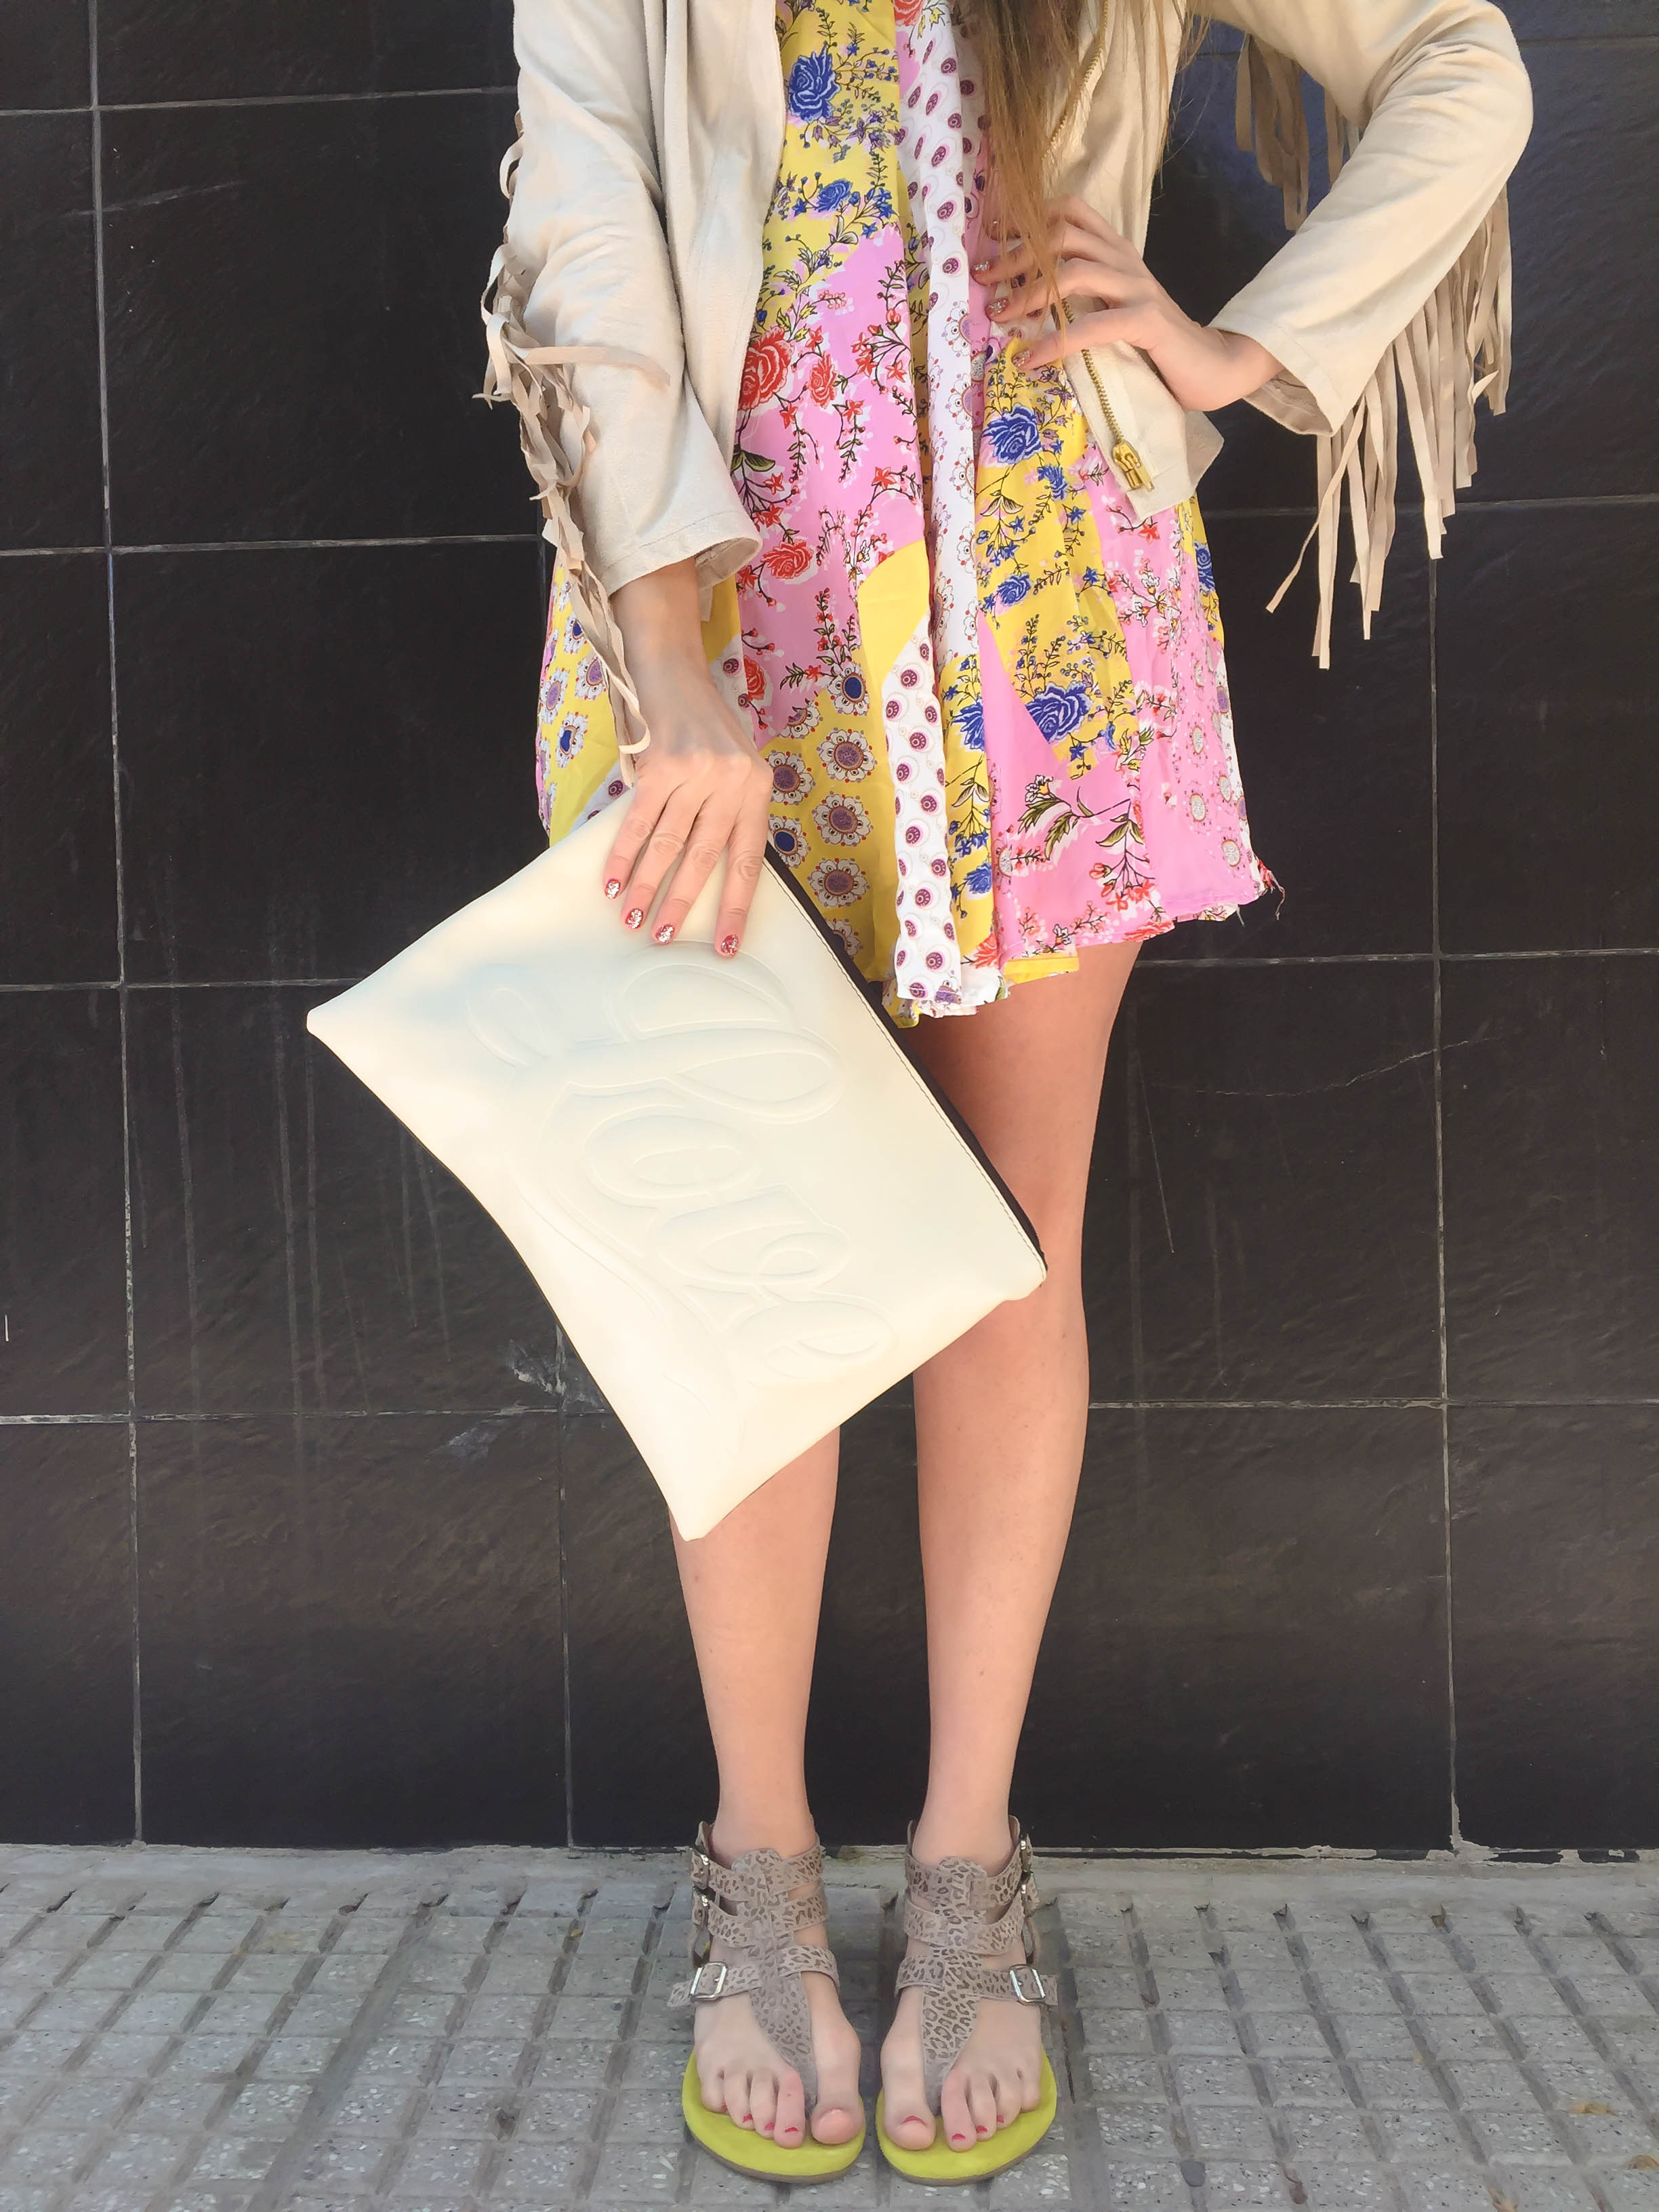 boho-spirit-fashion-diaries-5